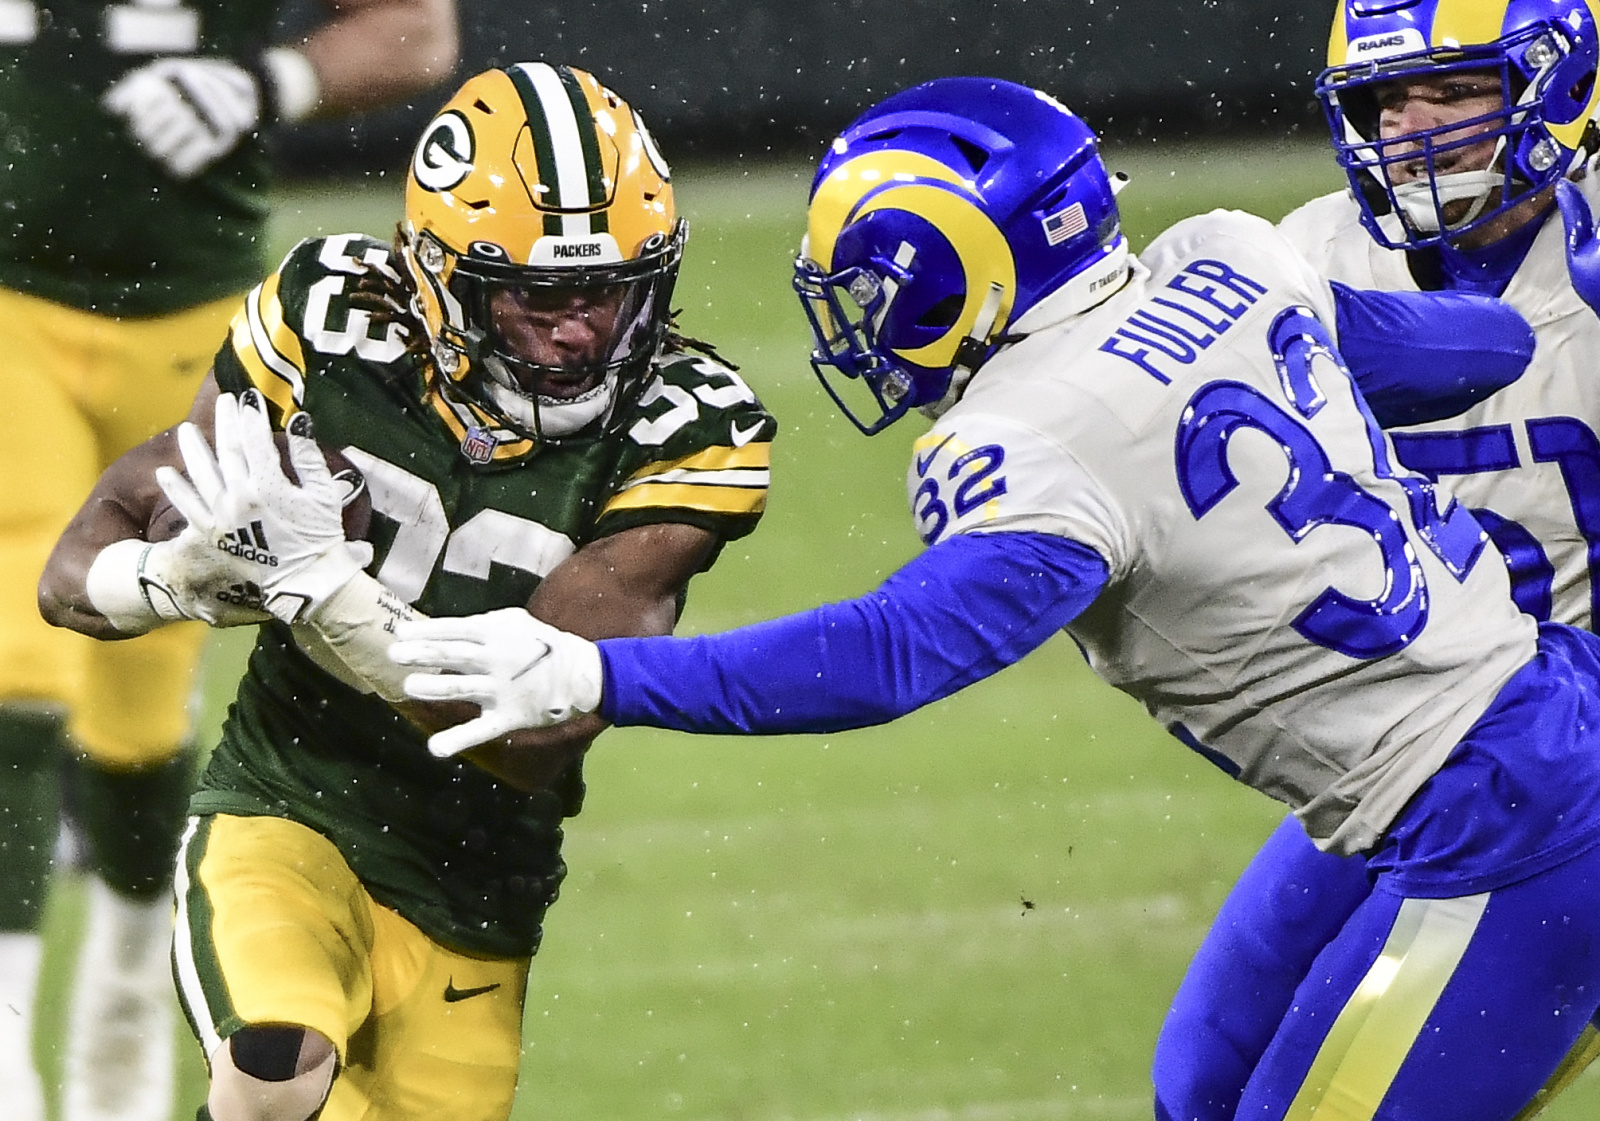 Packers: Best late-round picks in past 10 draft classes